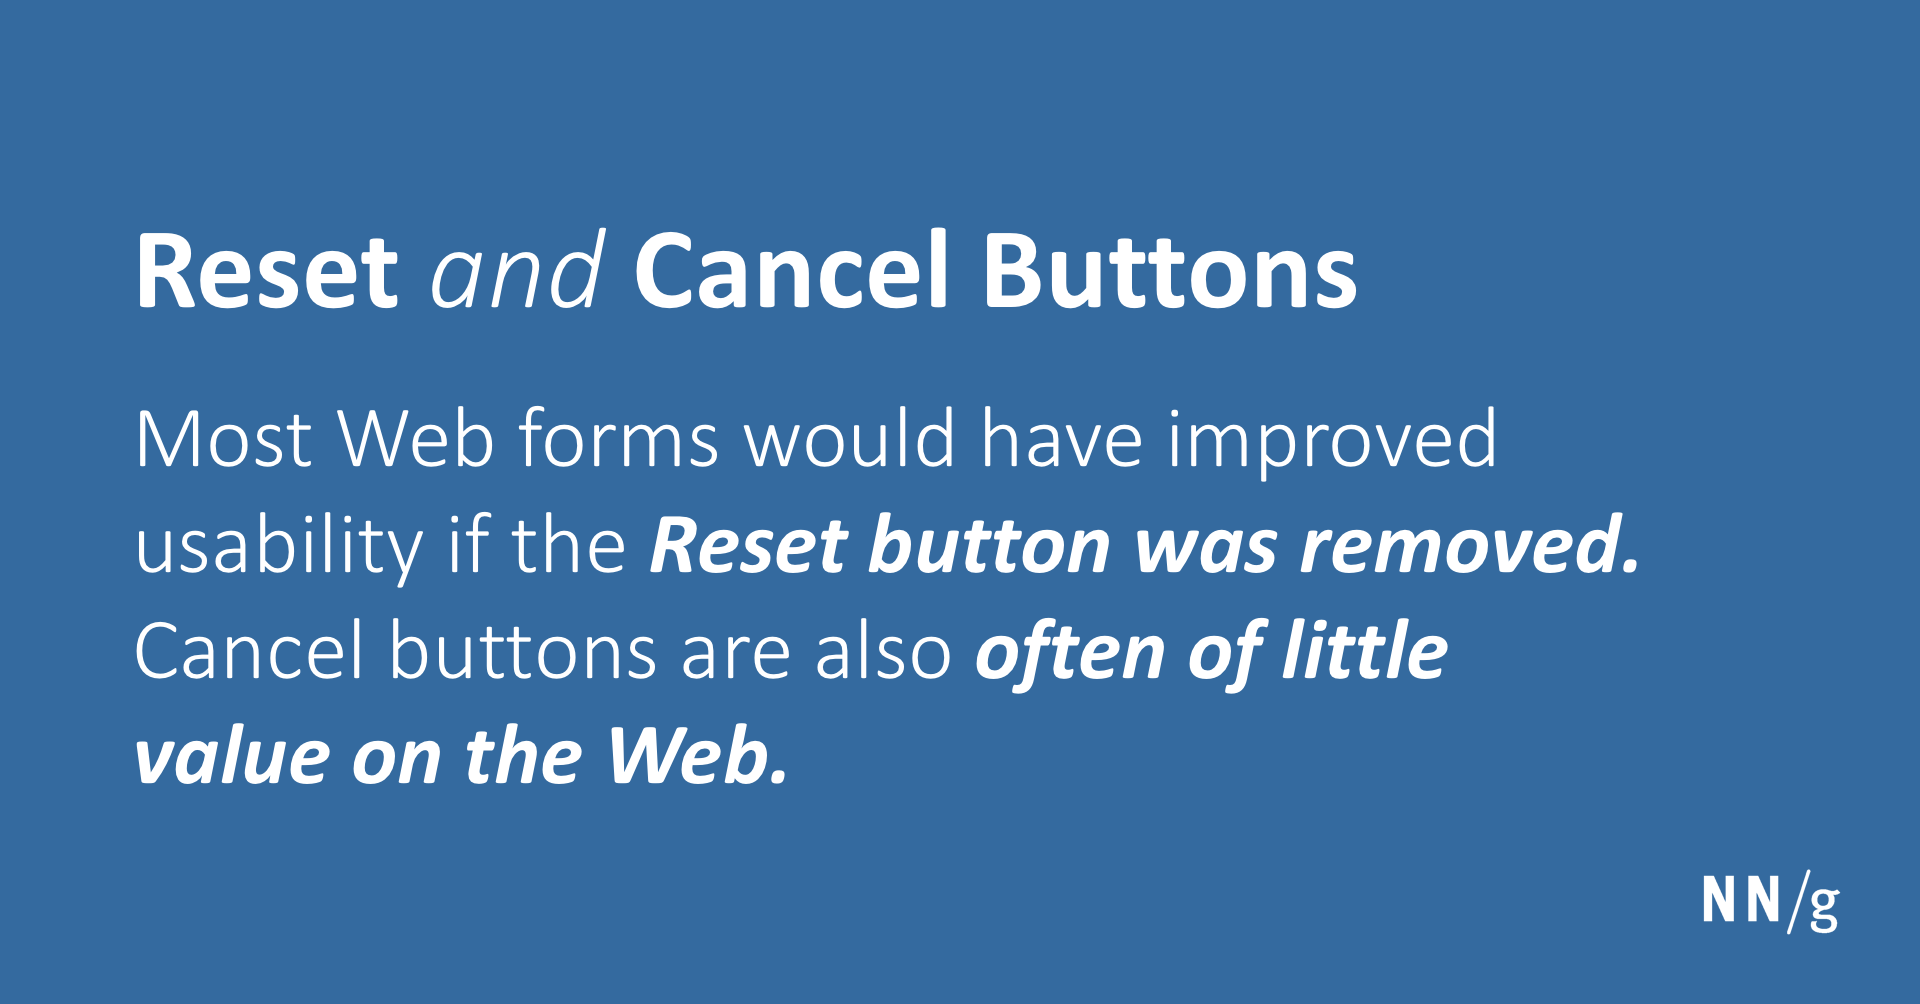 What can be done from old or unnecessary buttons